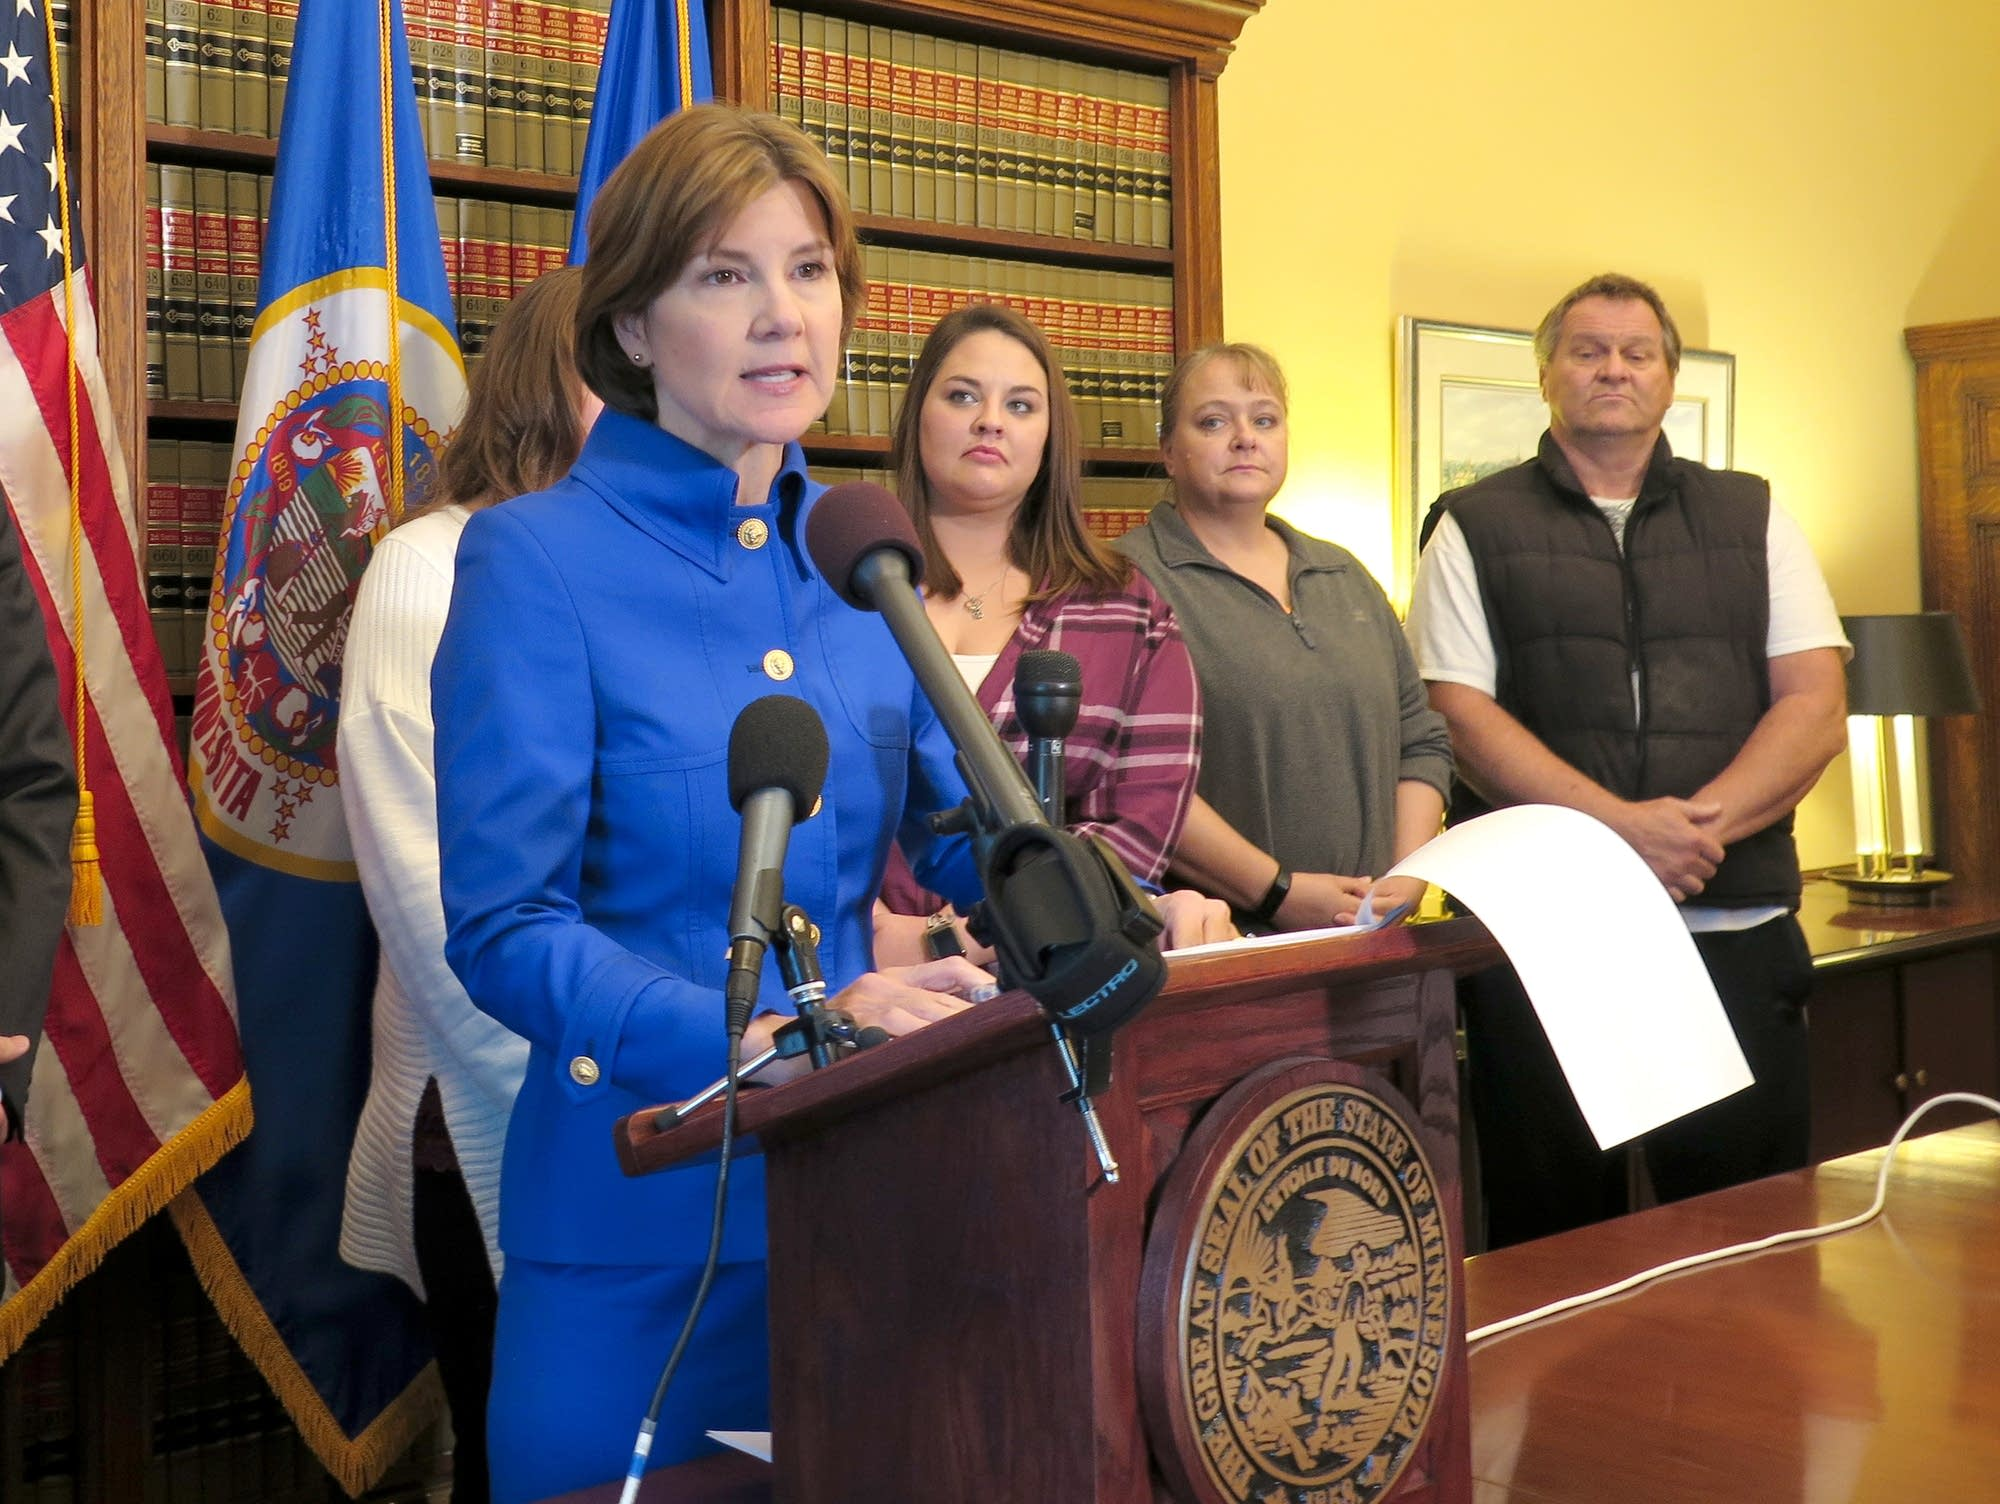 Attorney General Lori Swanson filed suit against insulin manufacturers